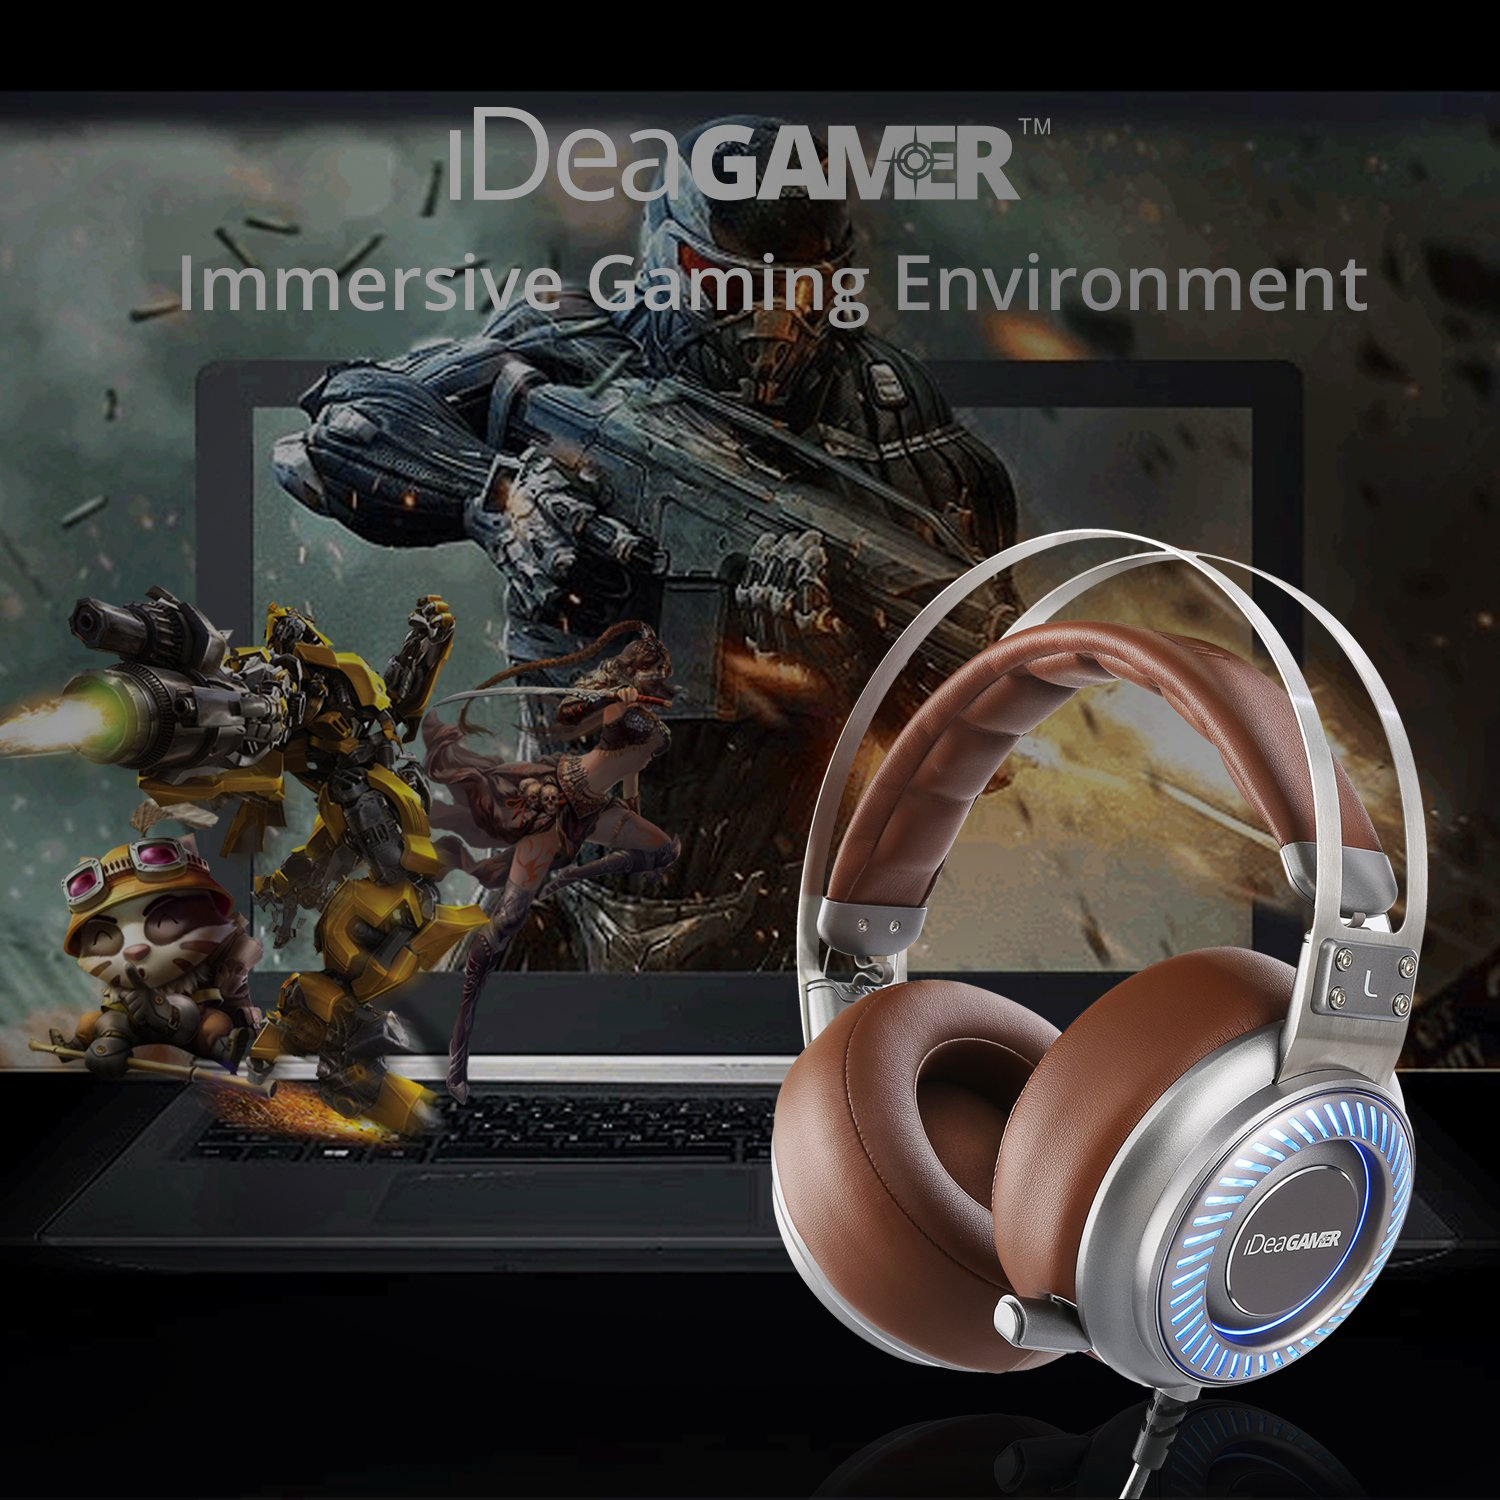 Gaming Headset, 7.1 Surround Sound 4D Gamer Headphones